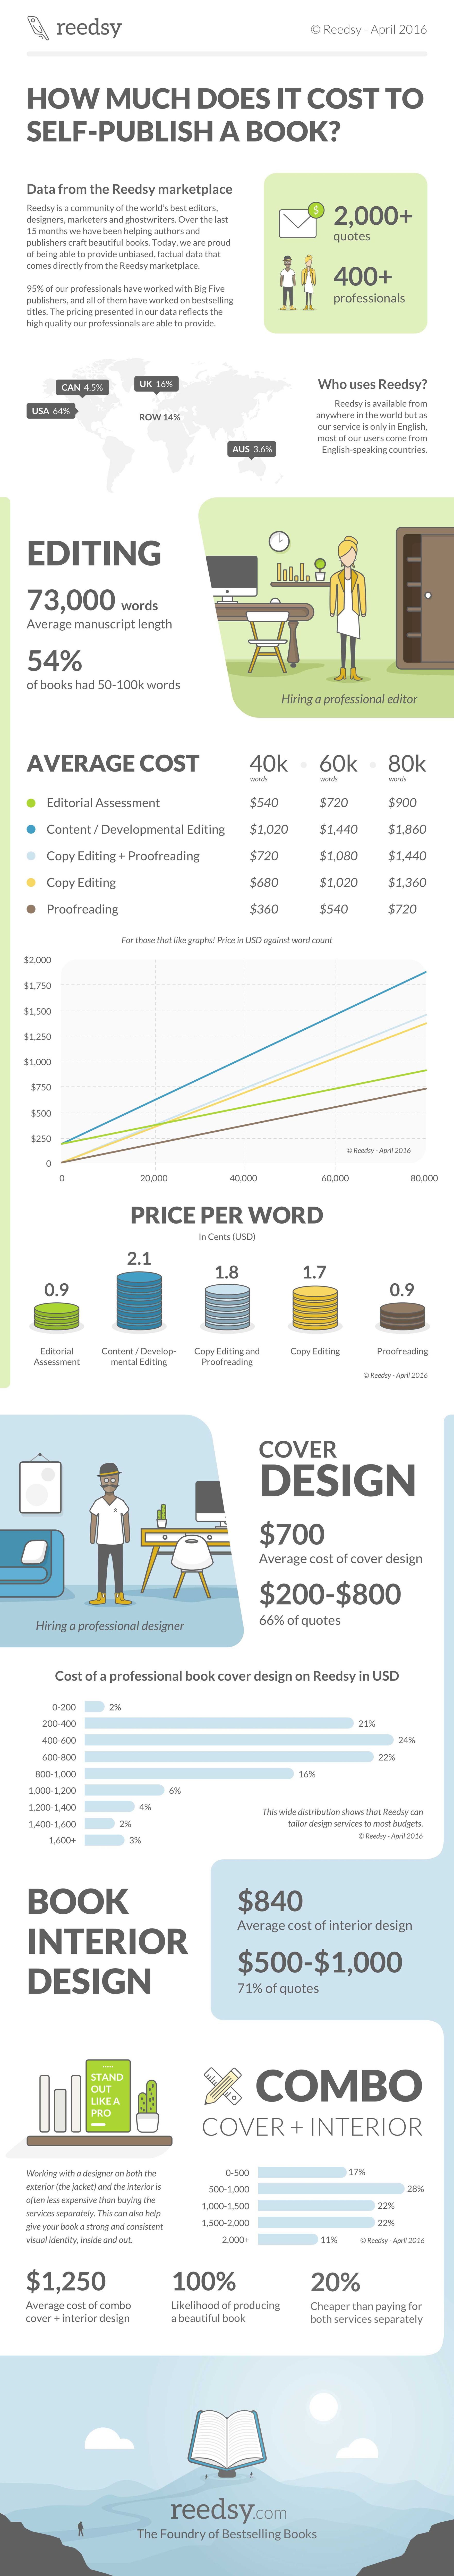 Reedsy Infographic on the cost of self-publishing